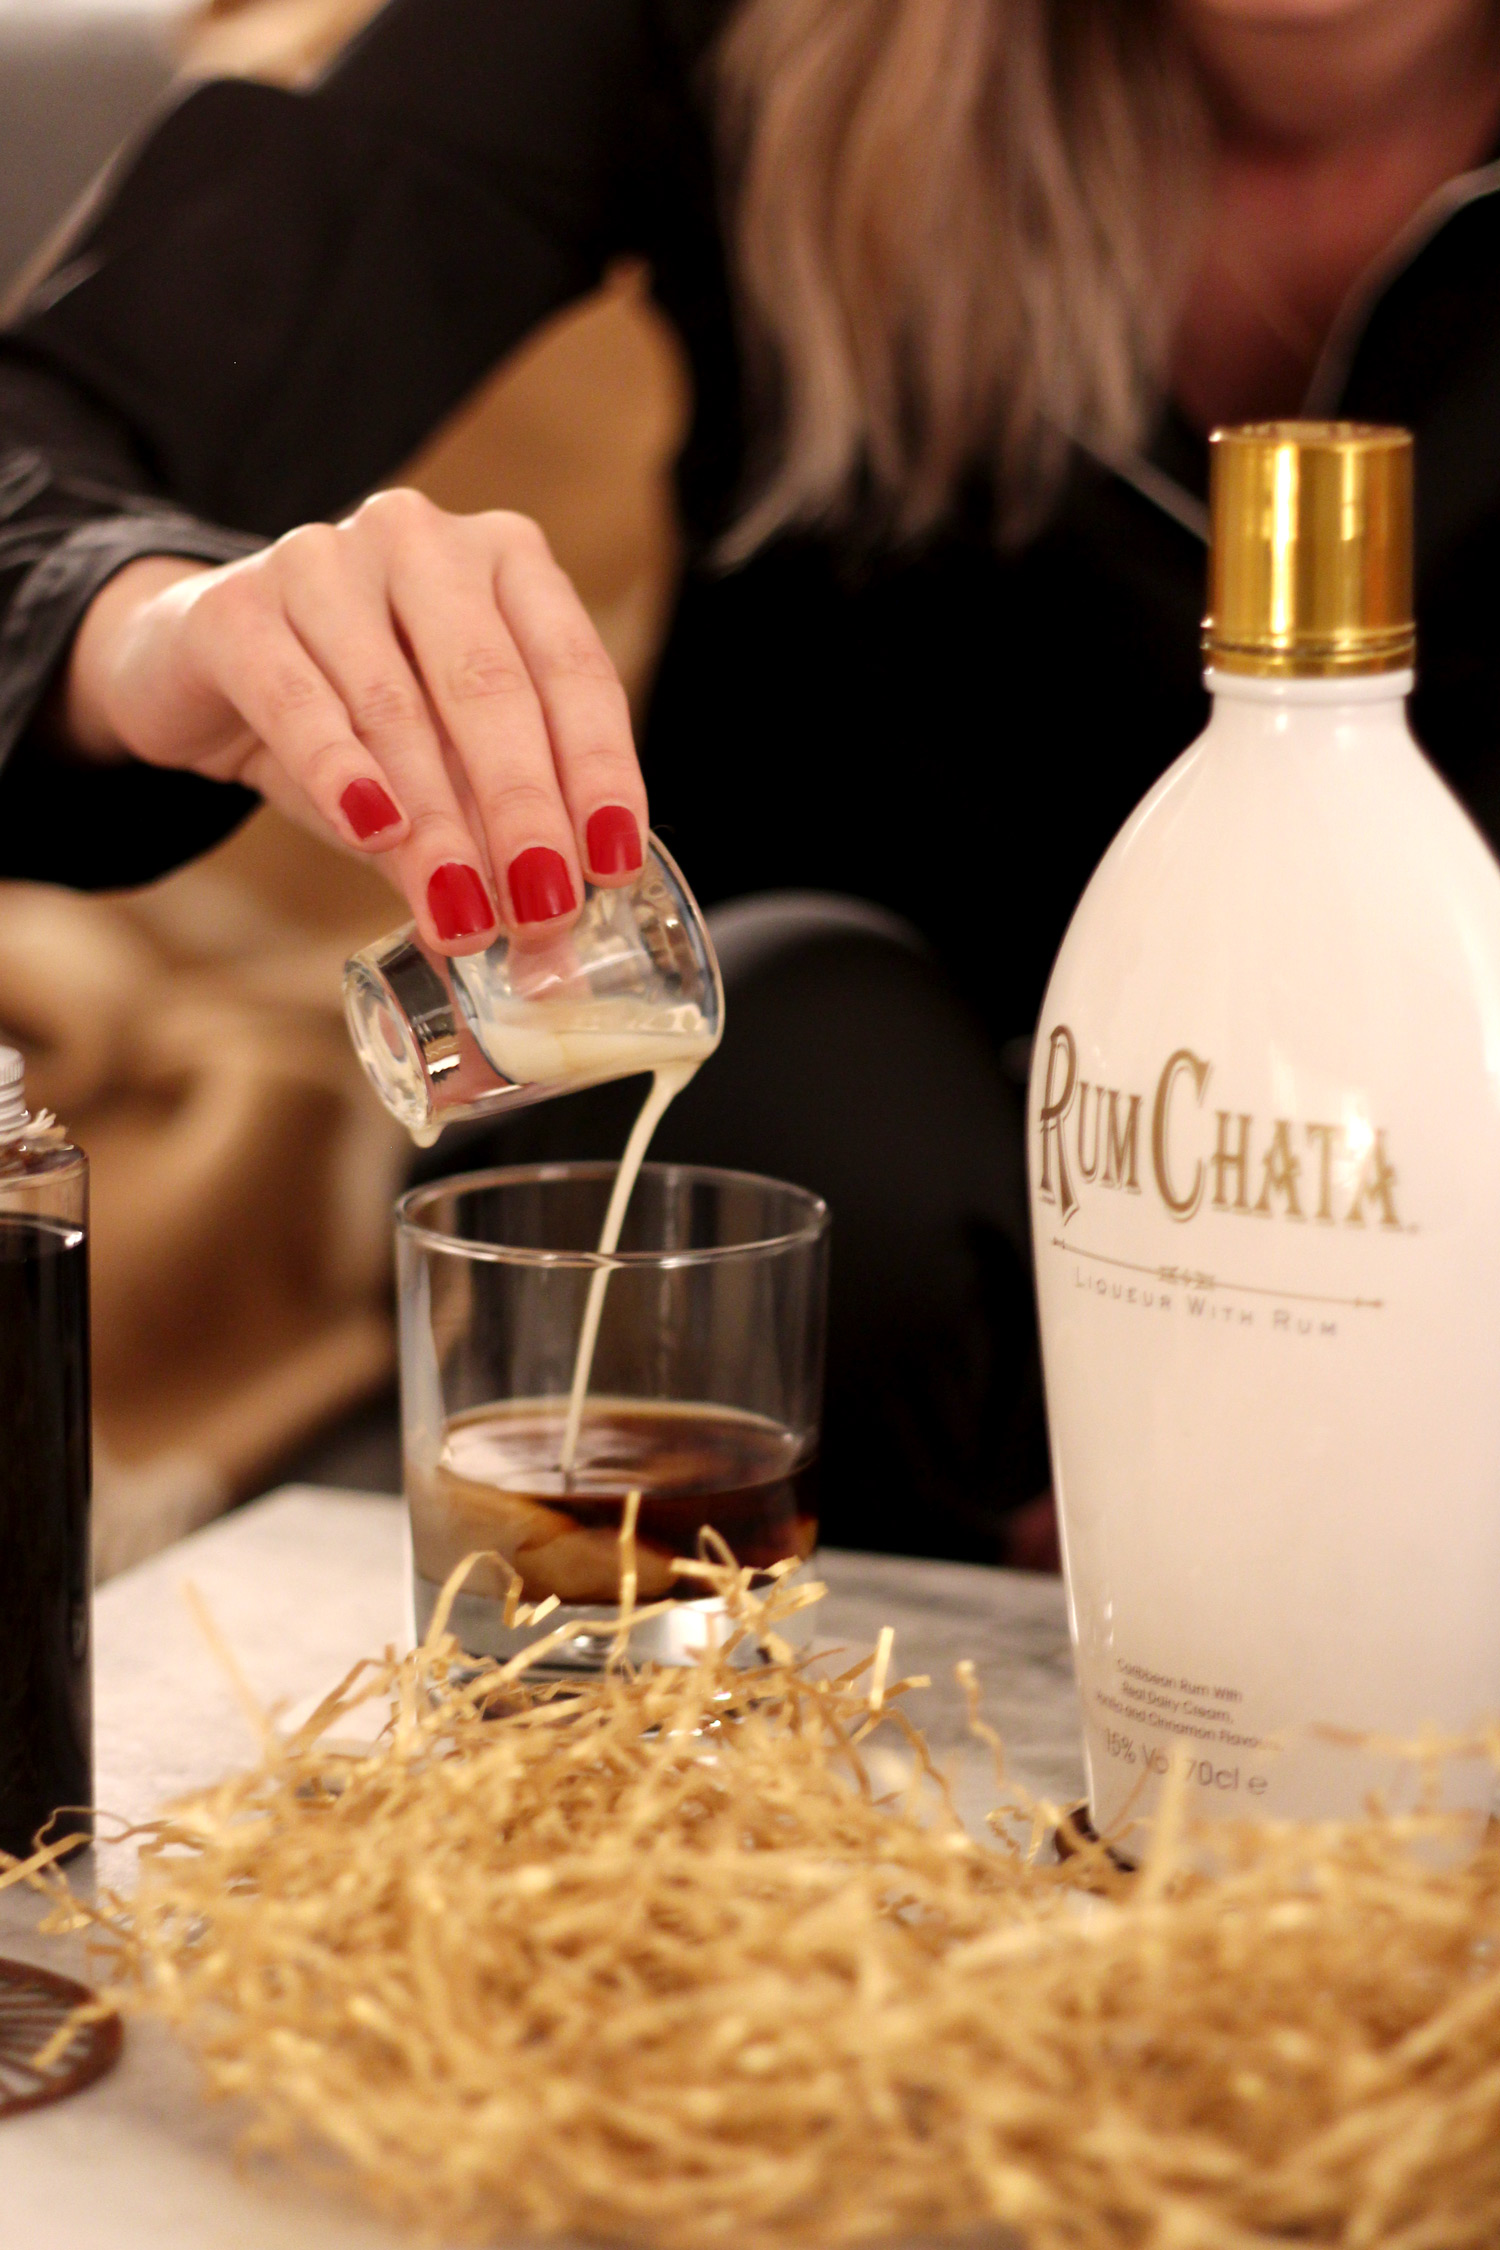 rum-chata-post-girls-night-in-lifestyle-cocktails